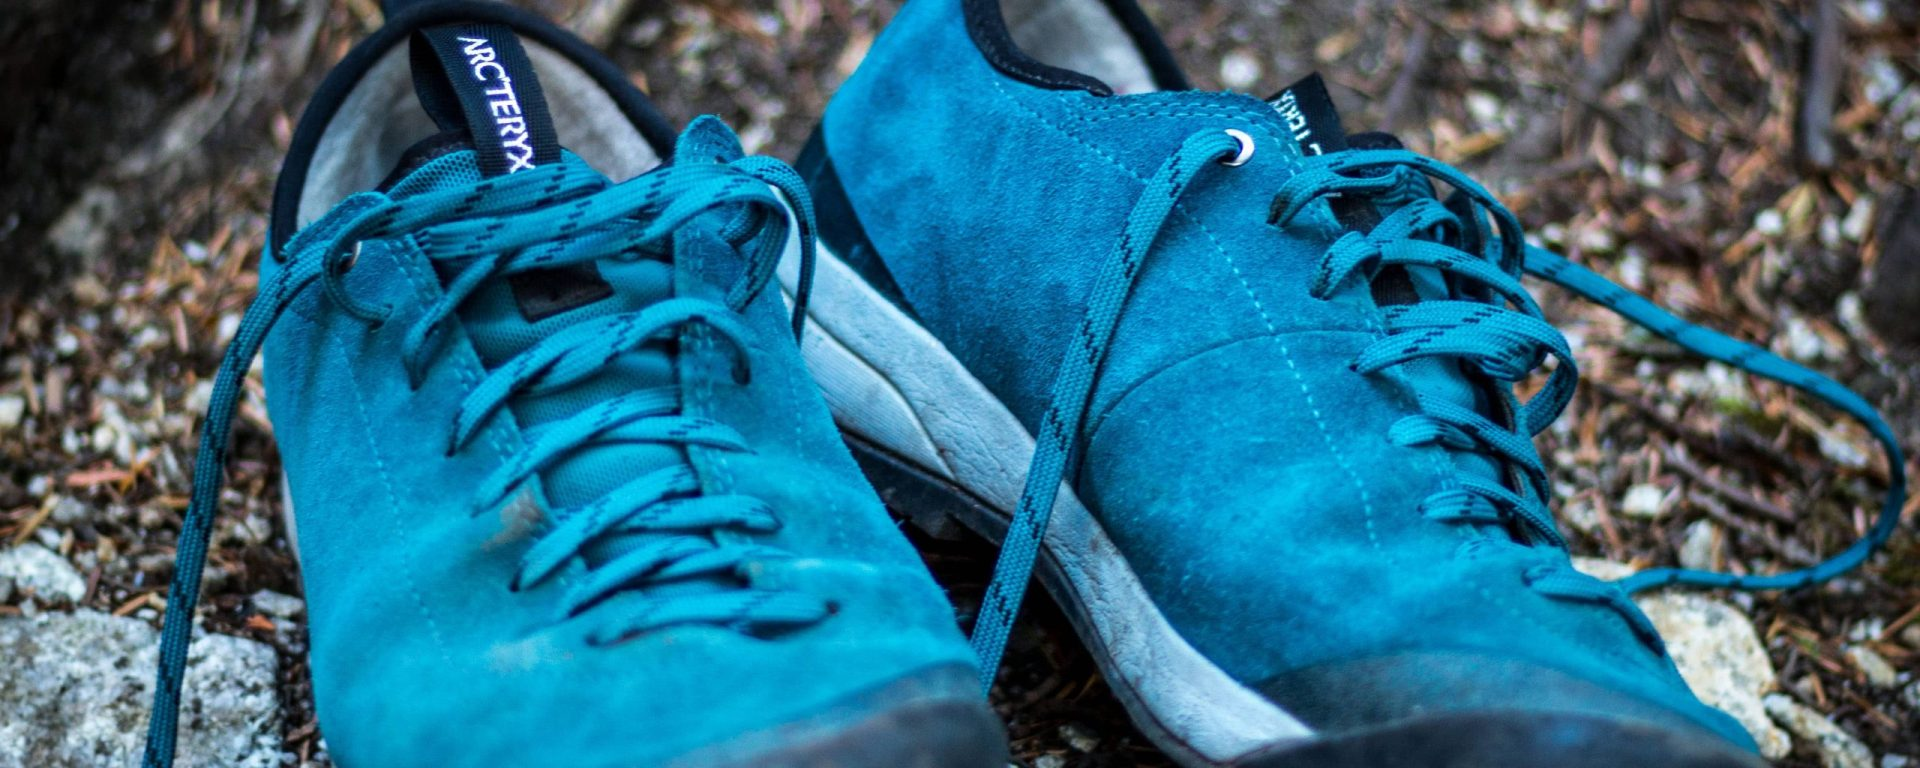 Arc'teryx Acrux Leather Approach Shoes